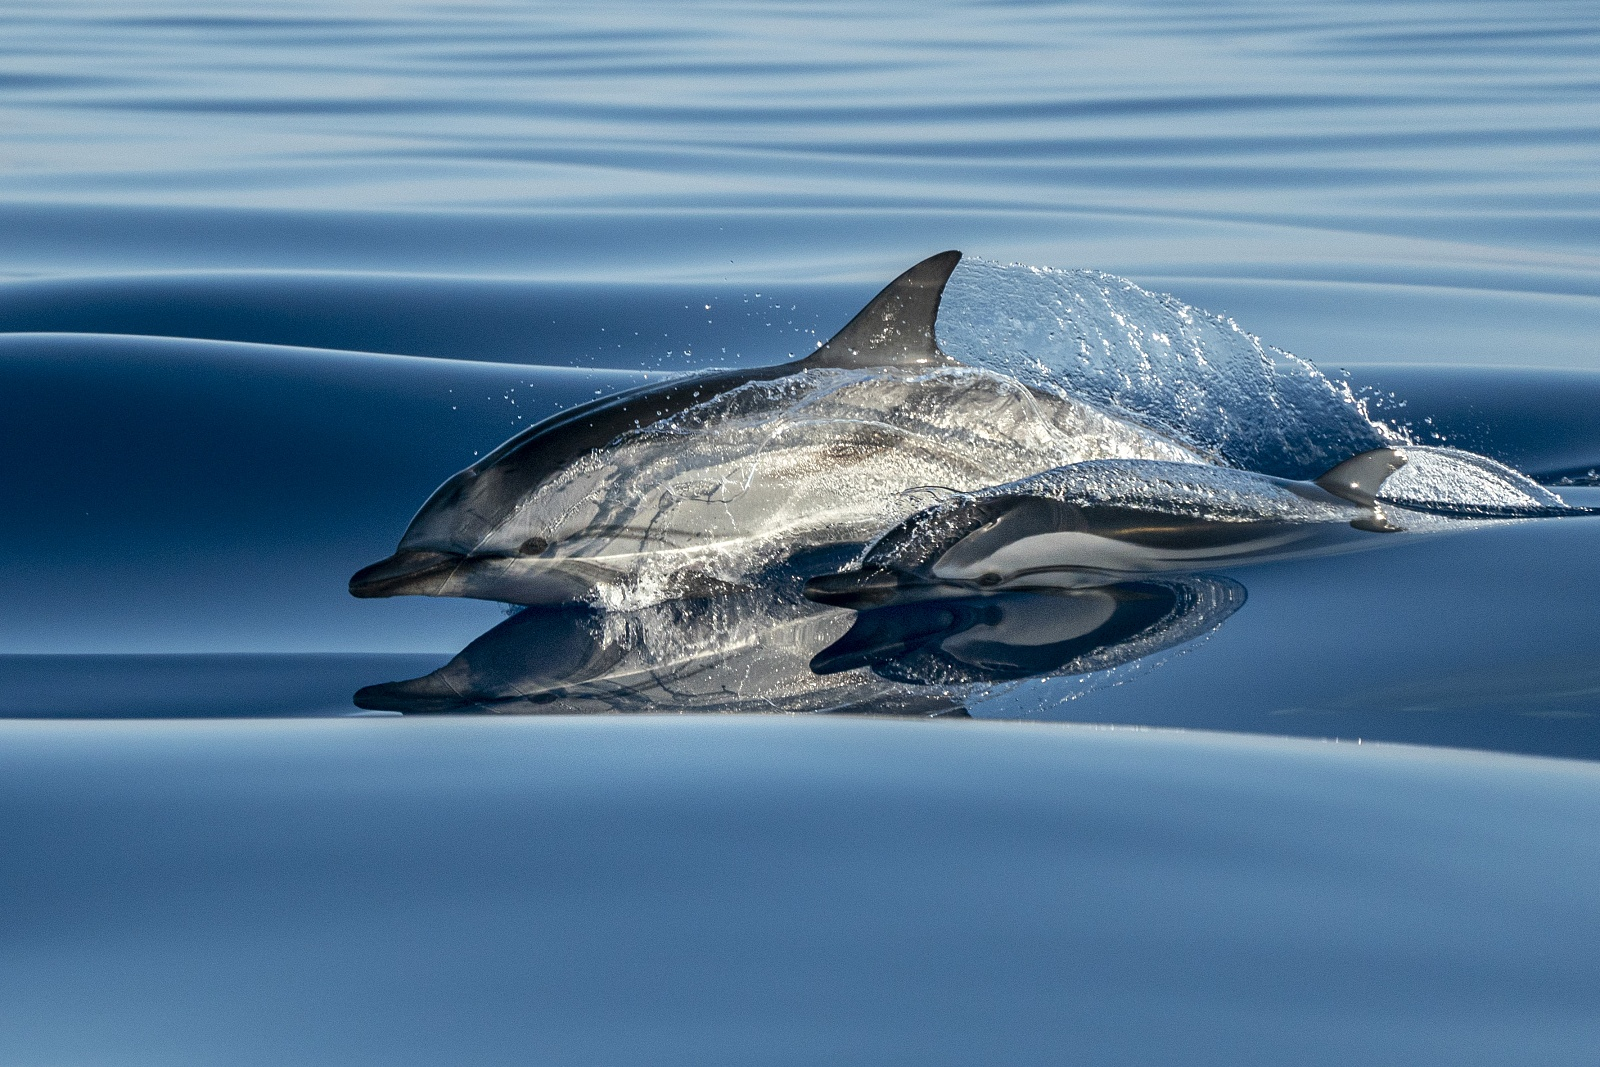 Surfing in a velvet sea - Striped dolphins